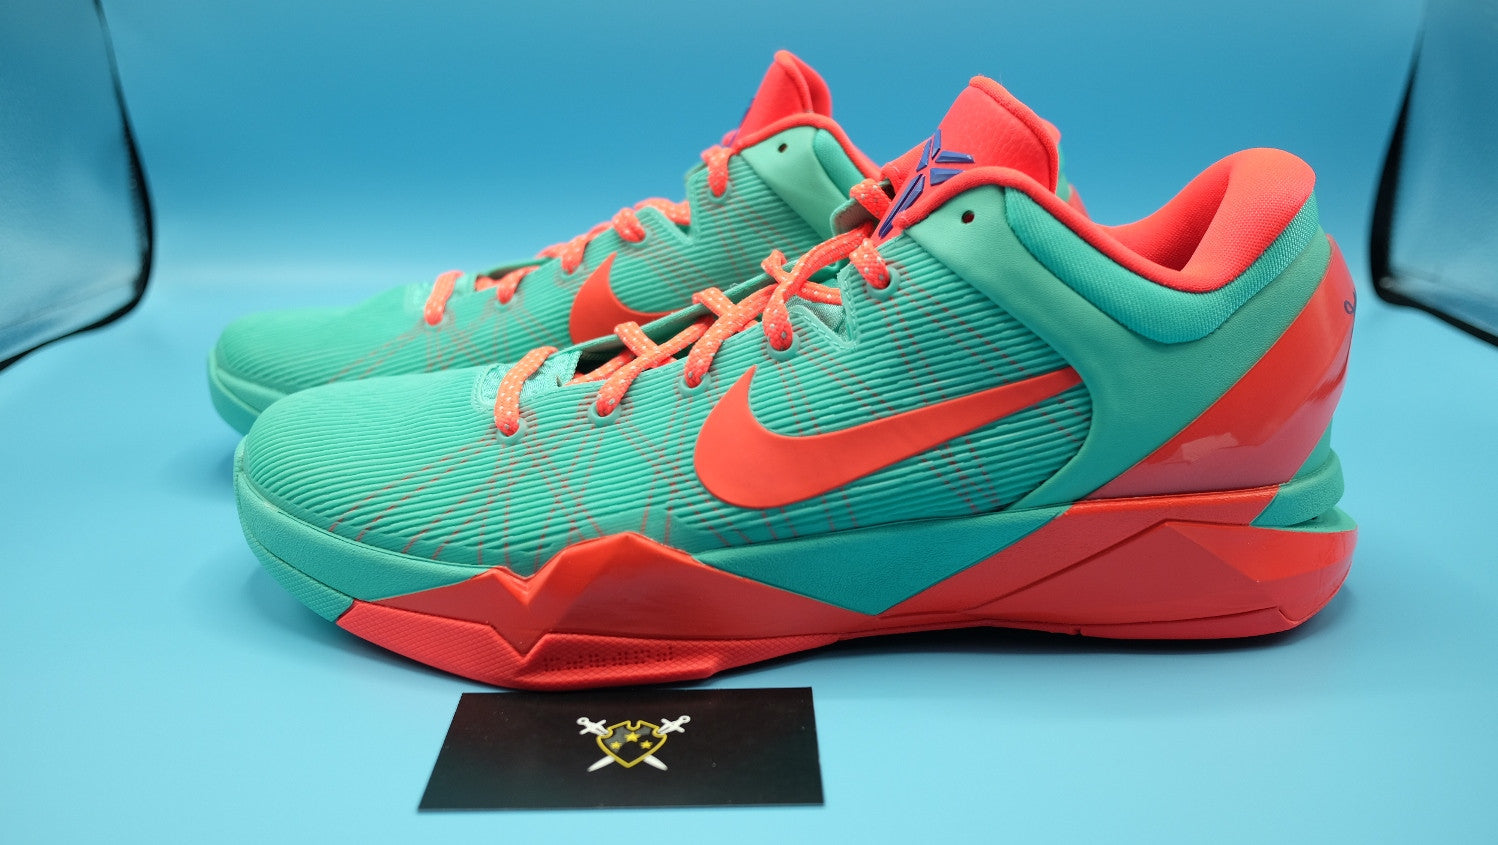 huge selection of c5c1b 90efd ... Nike Zoom kobe 7   FC Barcelona Blue Teal DarkSole.net (3) ...